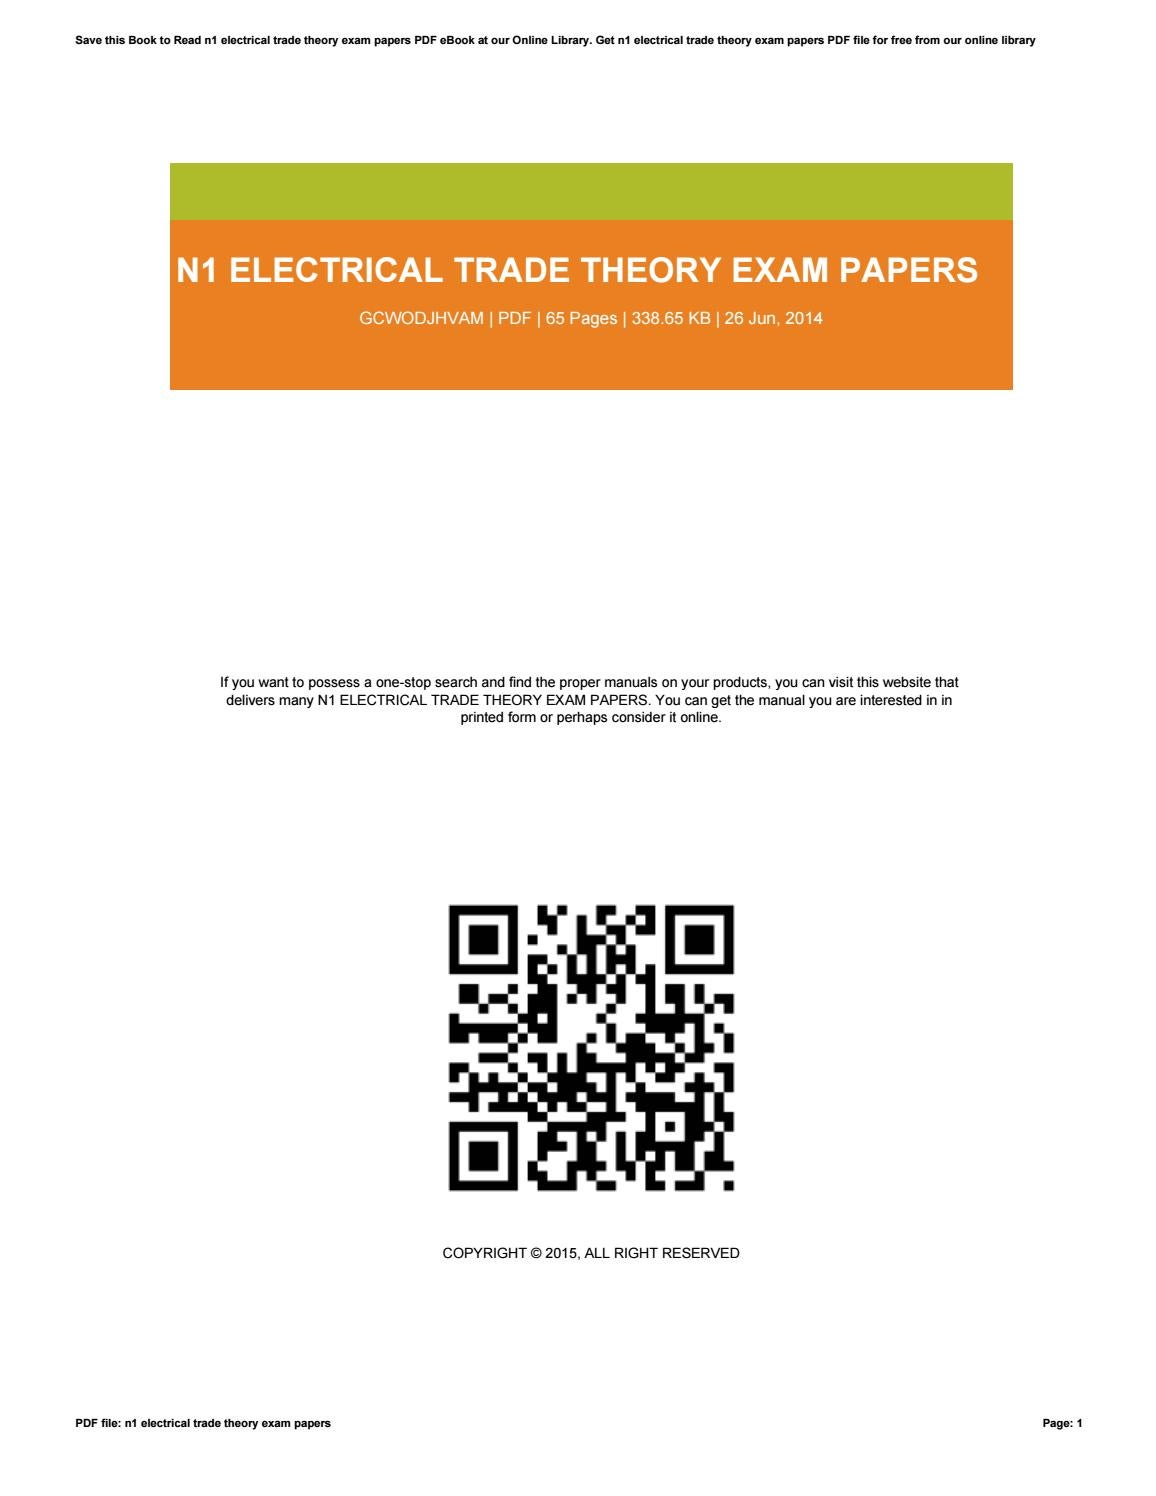 N1 question papers an memo 2014 ebook array electrical trade theory previous question papers ebook rh electrical trade theory previous question pap fandeluxe Choice Image